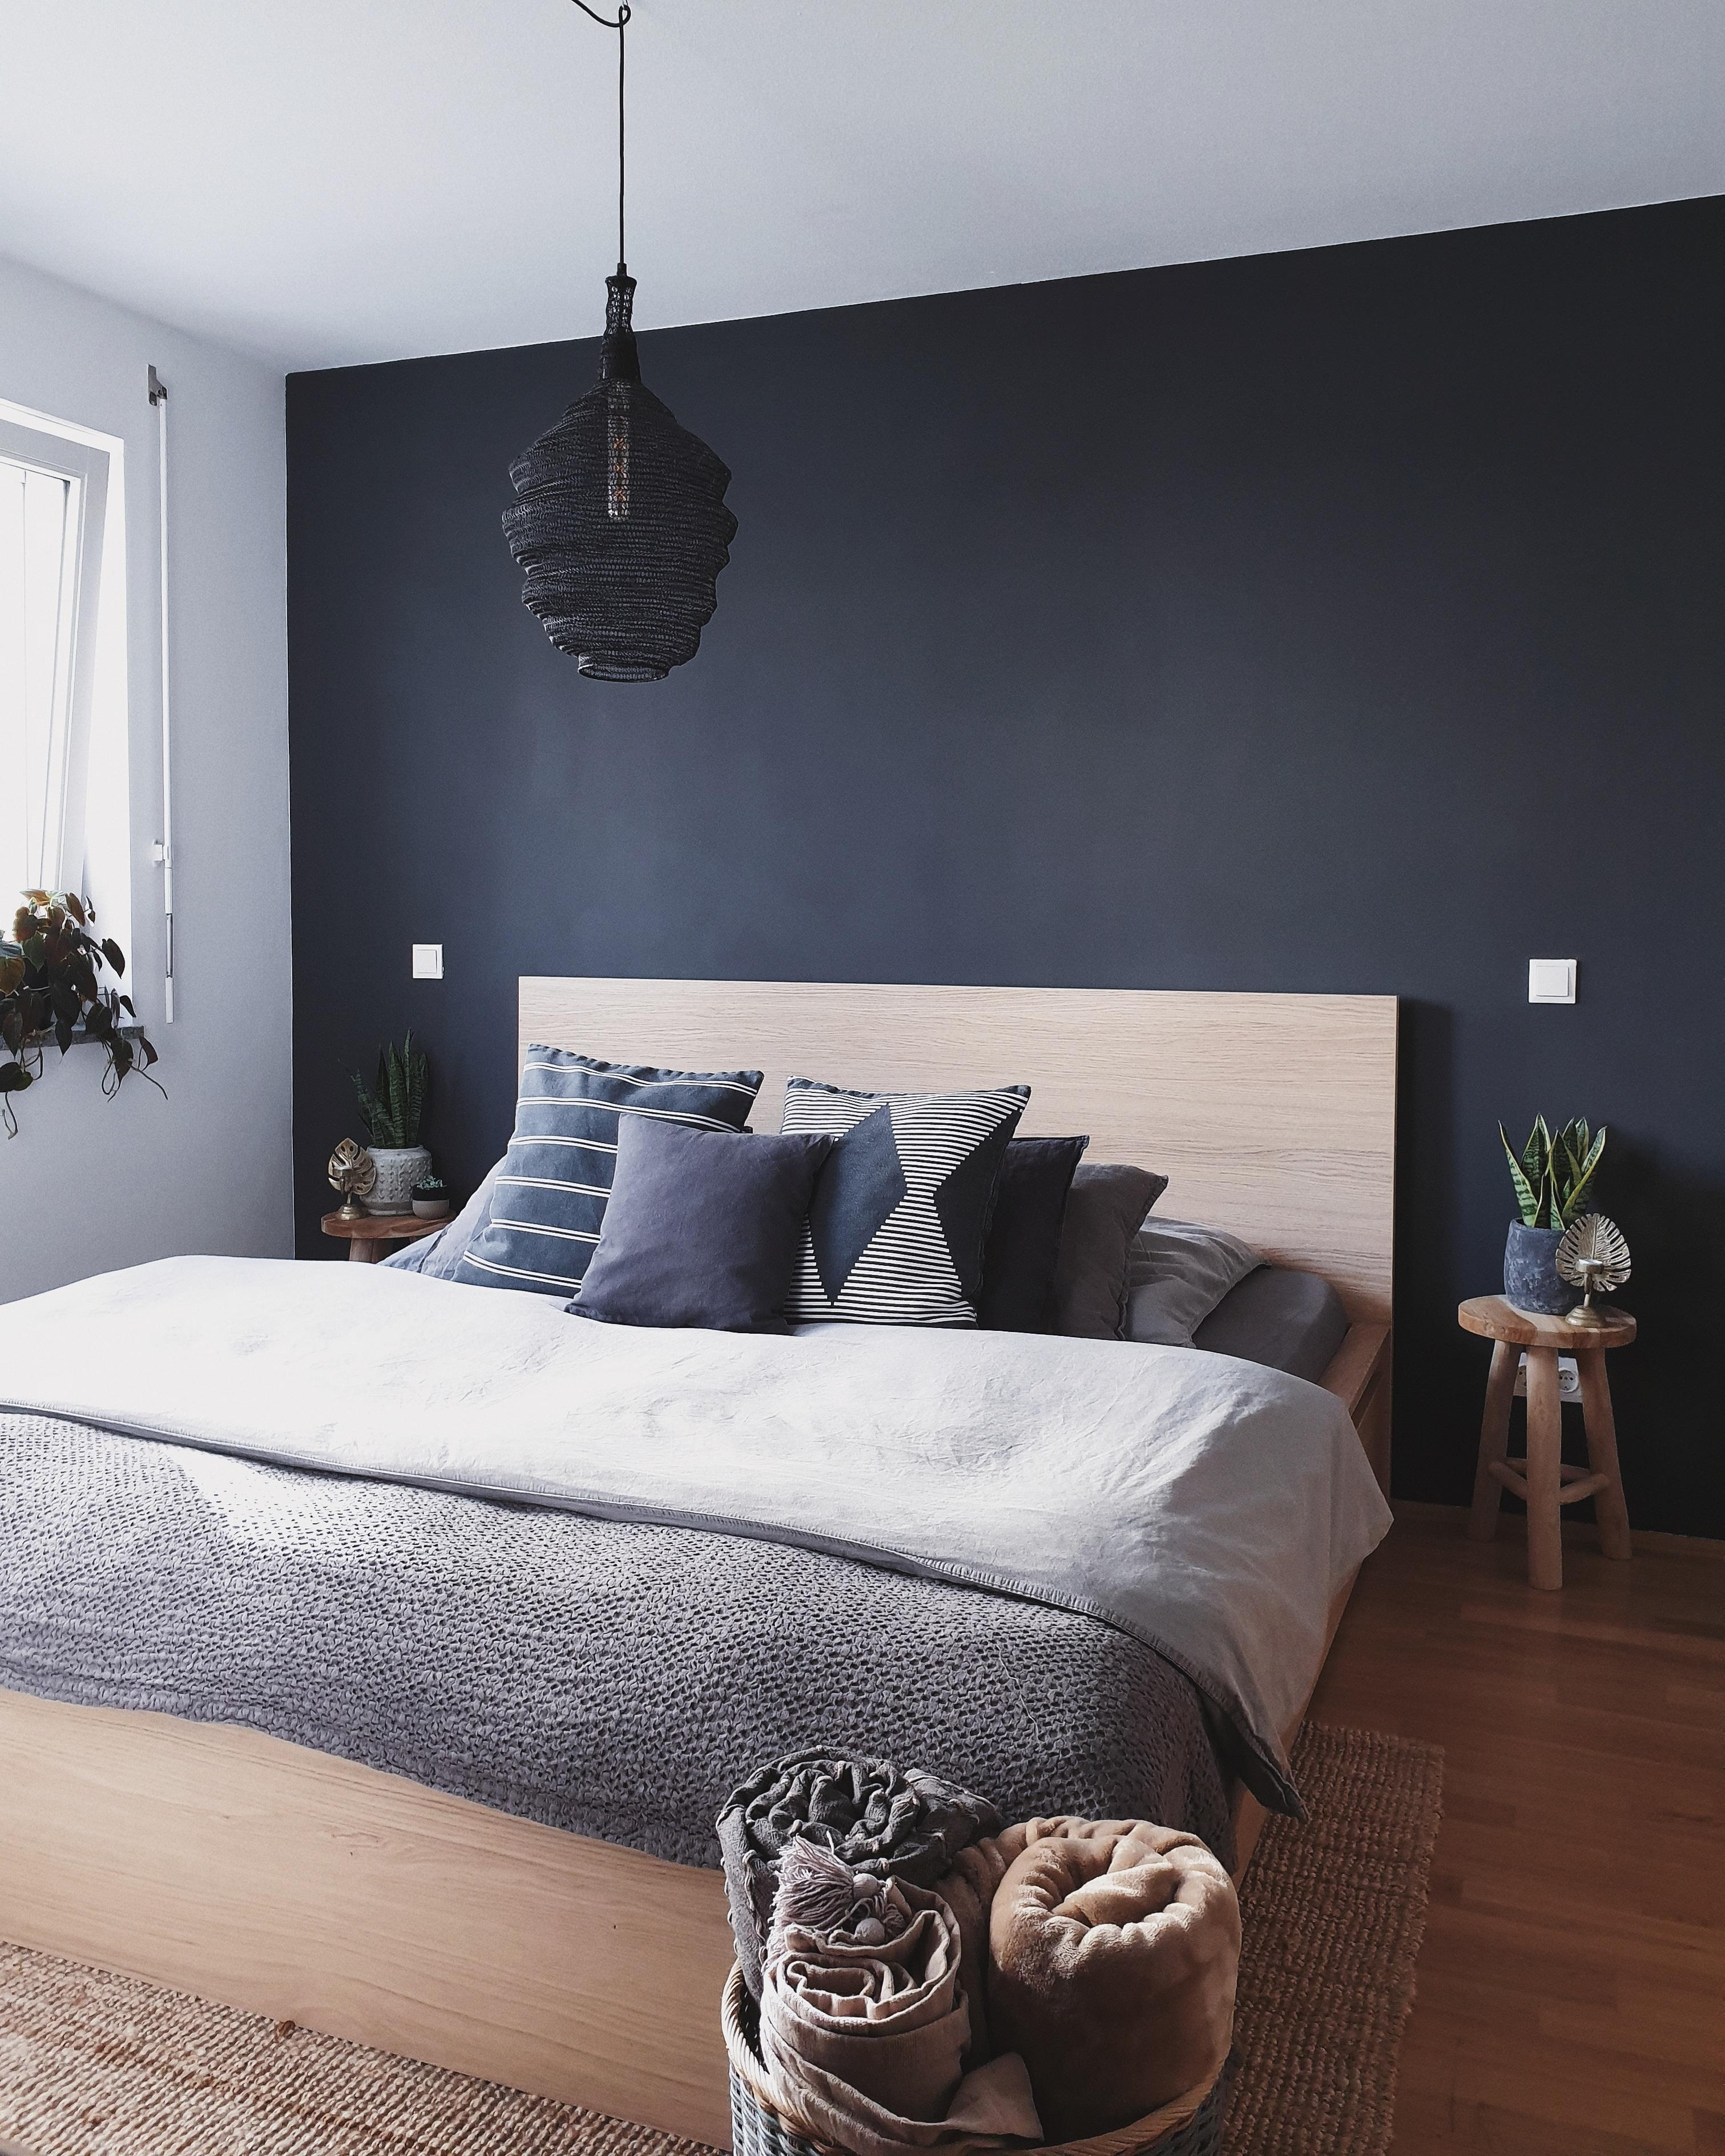 Schlafzimmer homeinspo darkbohemian bedroomdecor  3eb5fc86 0bfe 477f bf1d 10157d2576a4